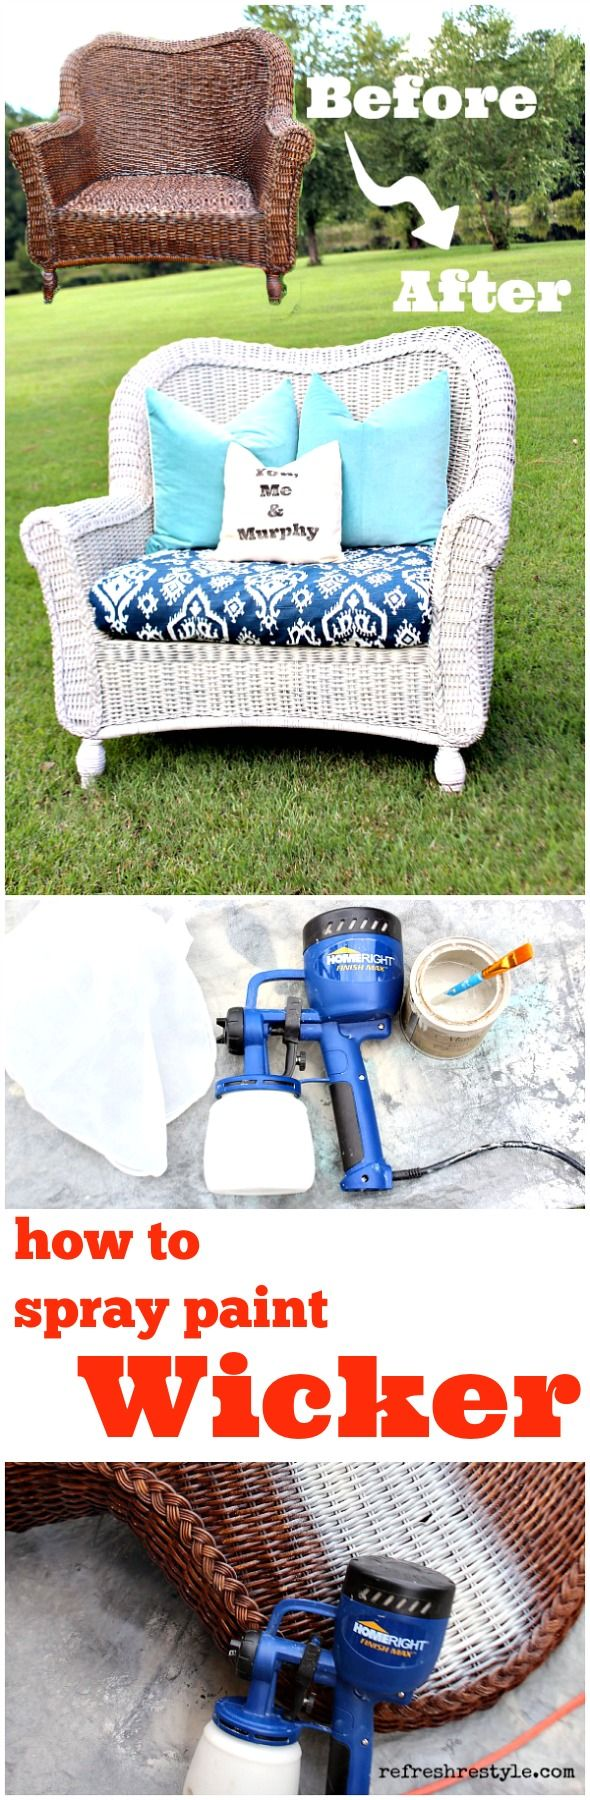 How to spray paint wicker with any color, fast and easy! @faizasokari I thought you might wanna see this... haha